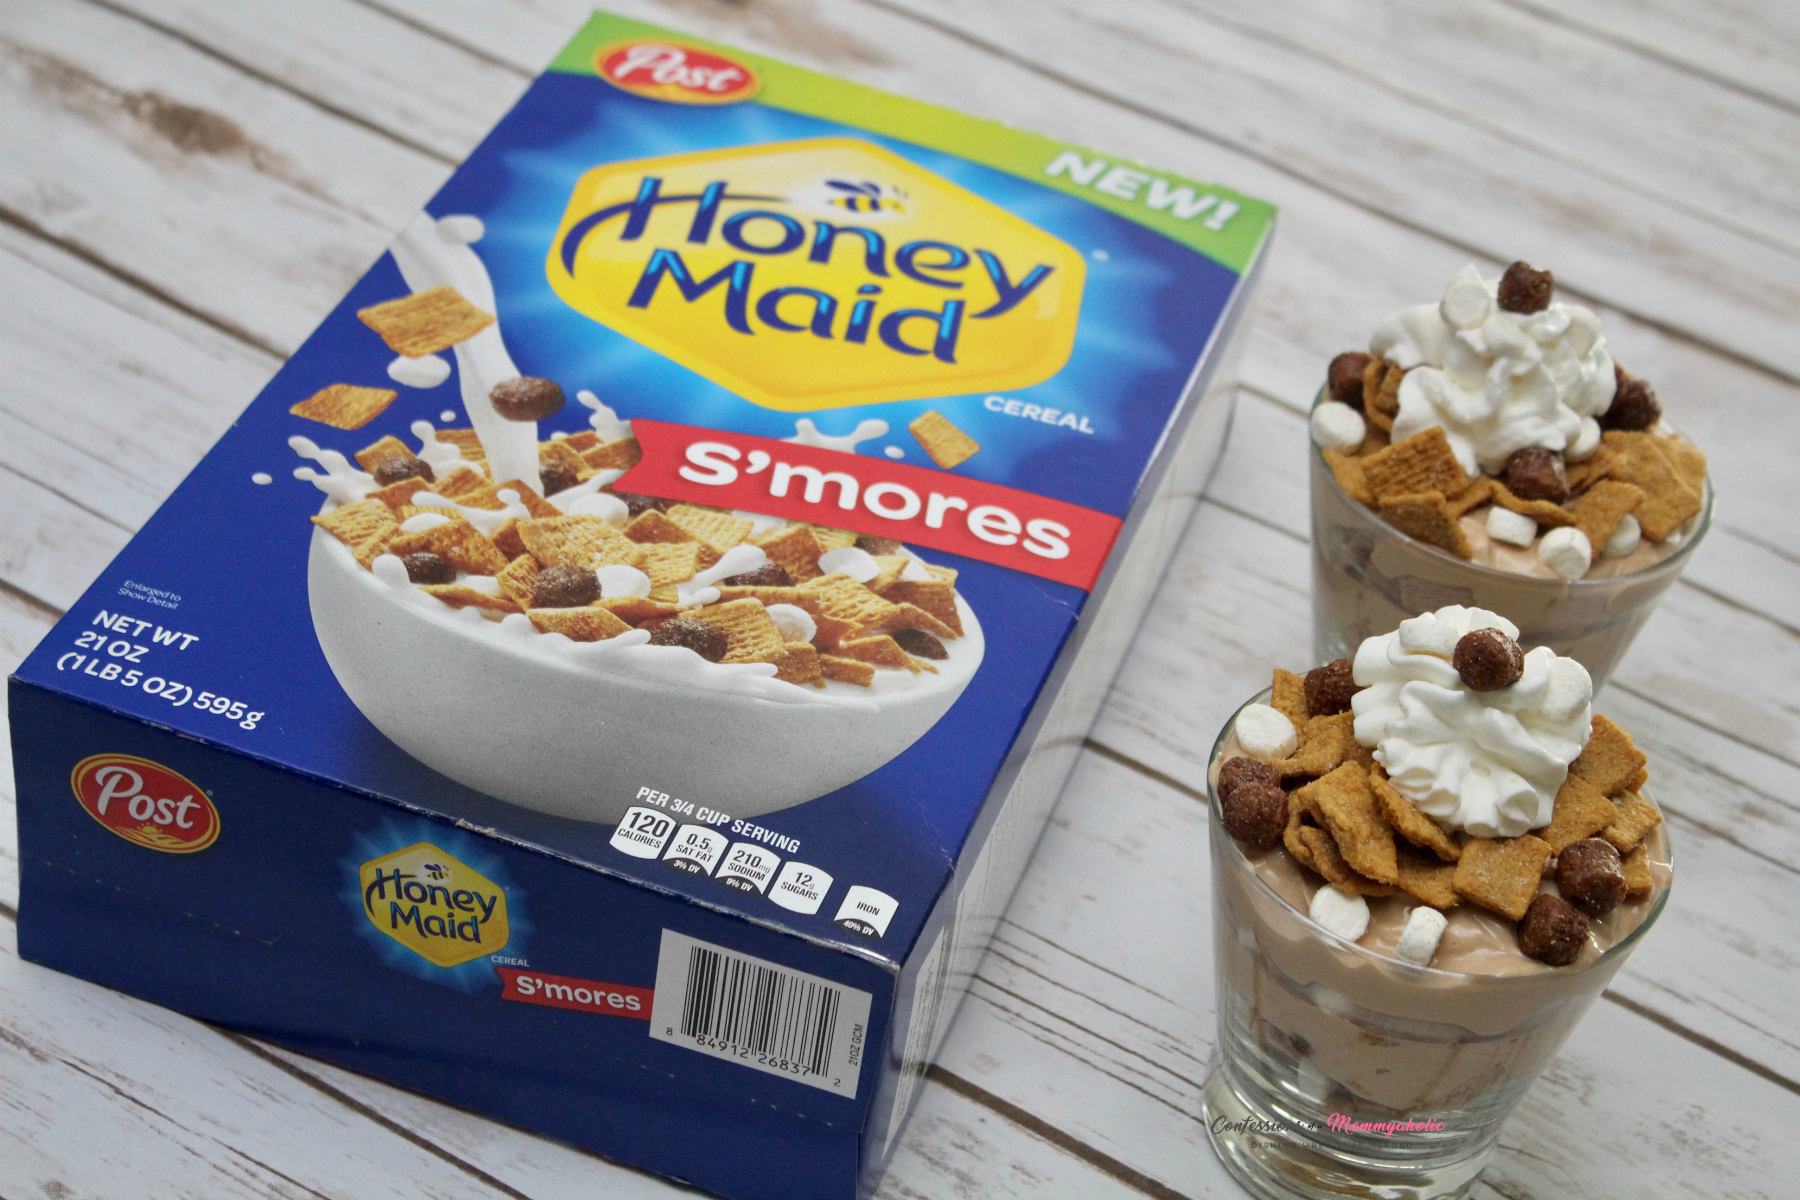 Honey Maid S'mores and Finished Parfait Cups